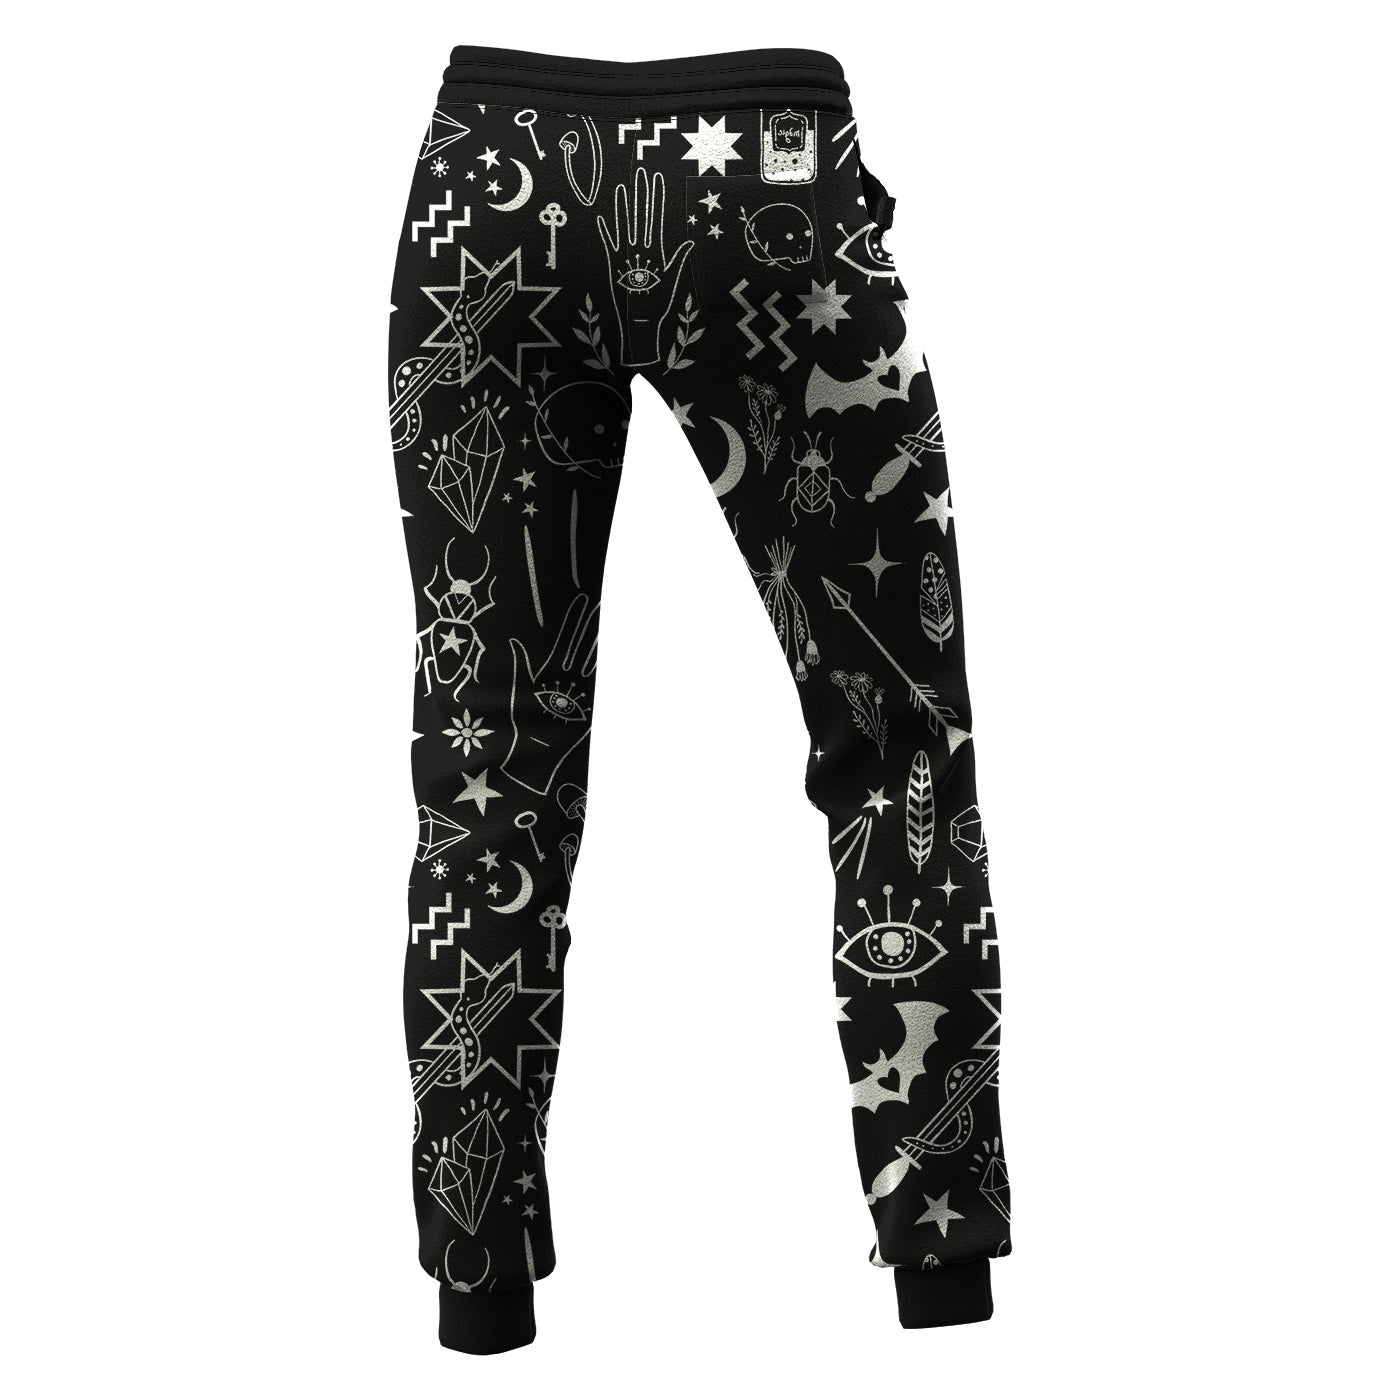 Enchanted Items Women Sweatpants